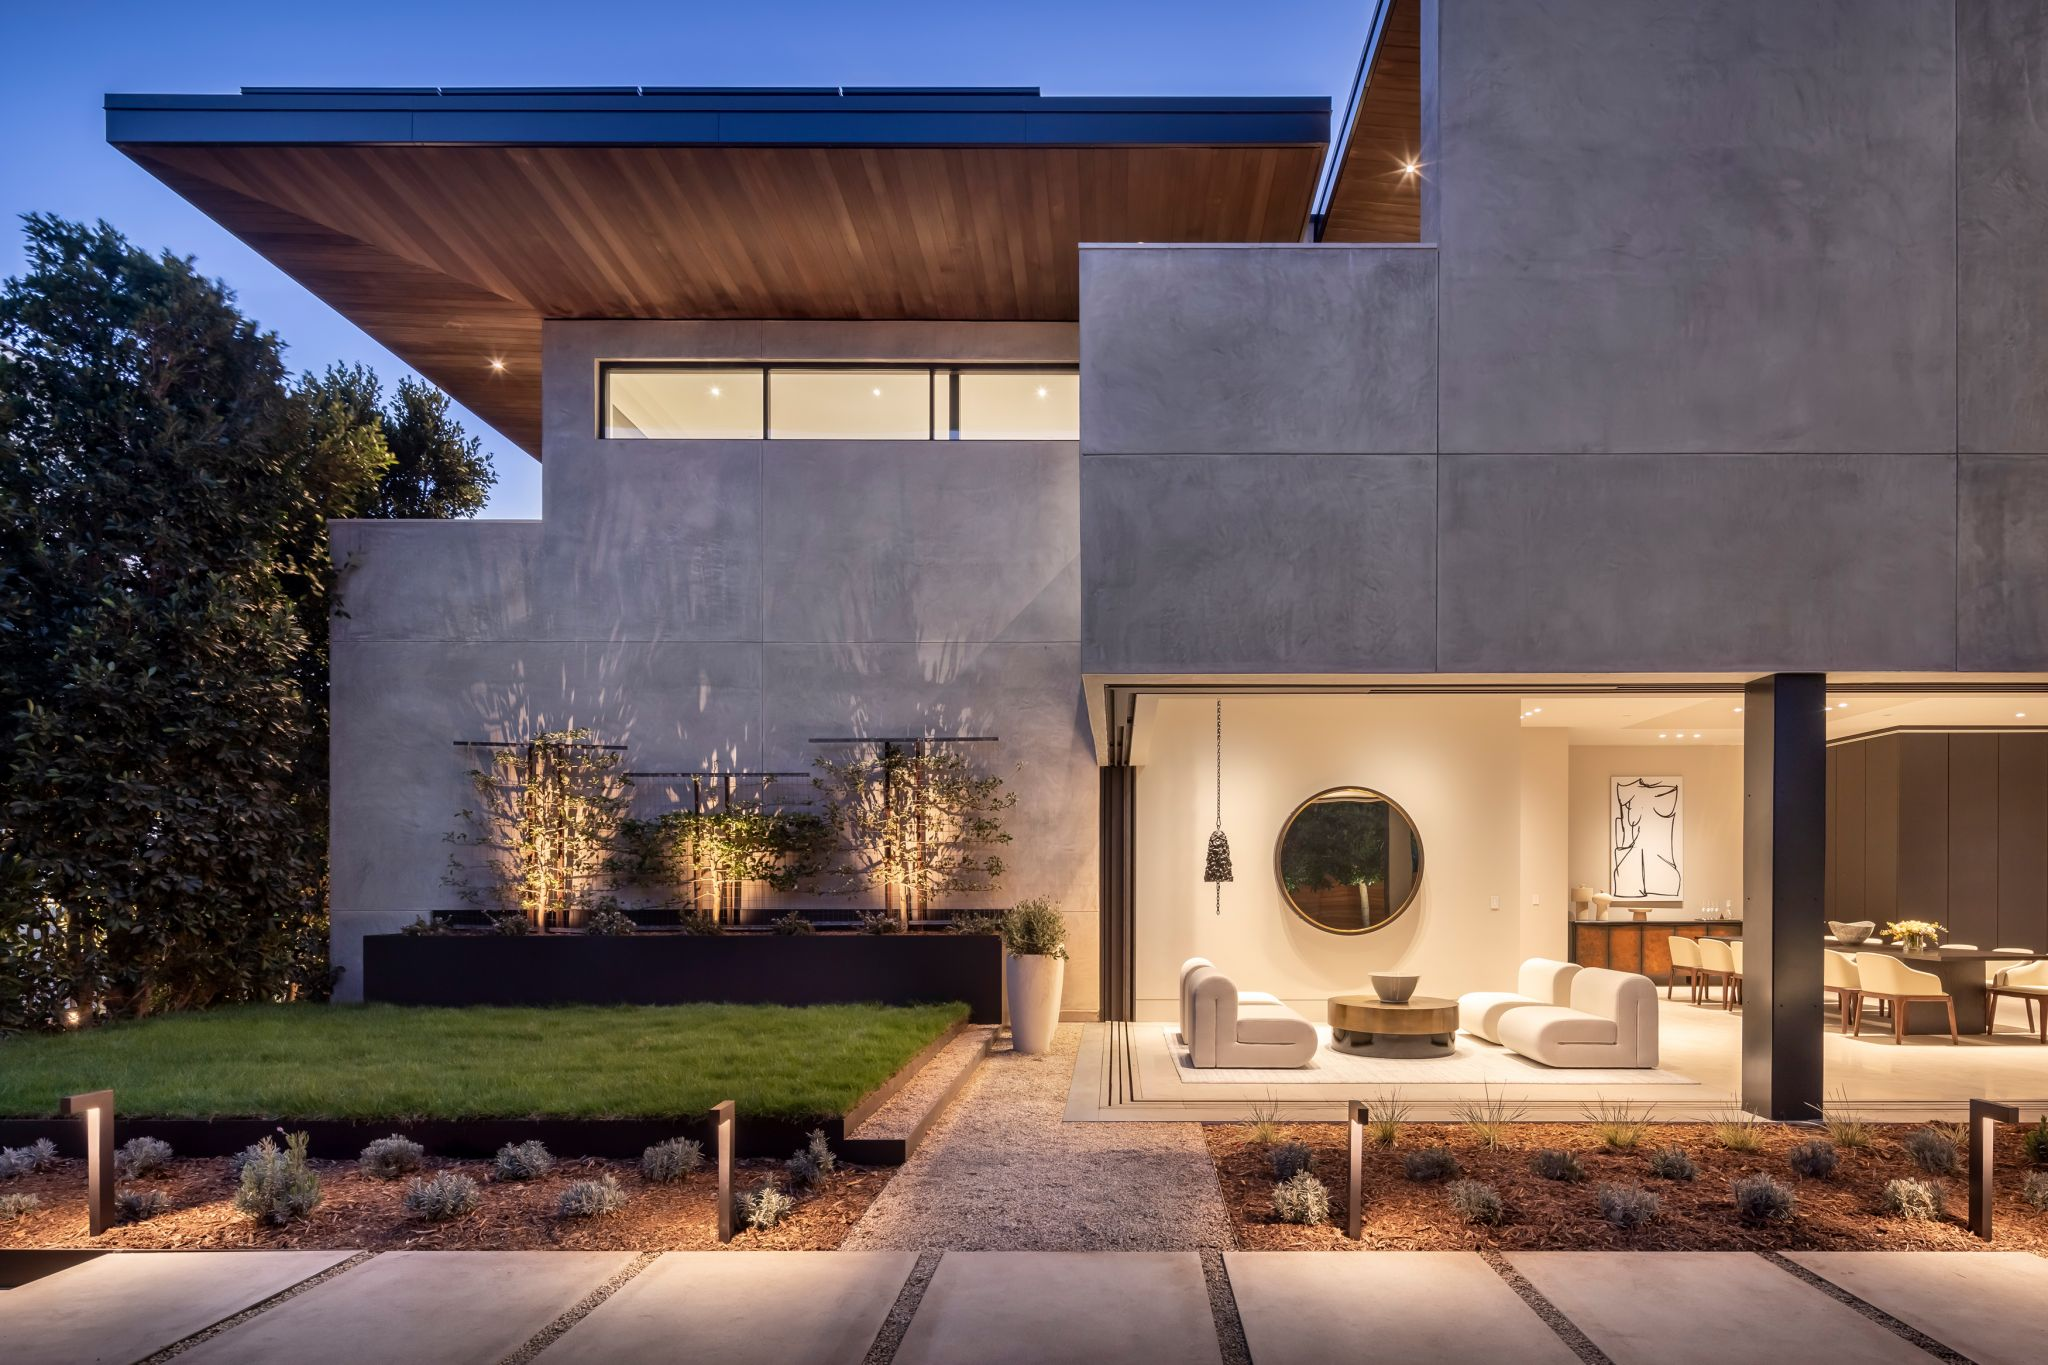 Here is a view of the angular design at dusk, as well as the elements that merge the indoors with the outdoors.